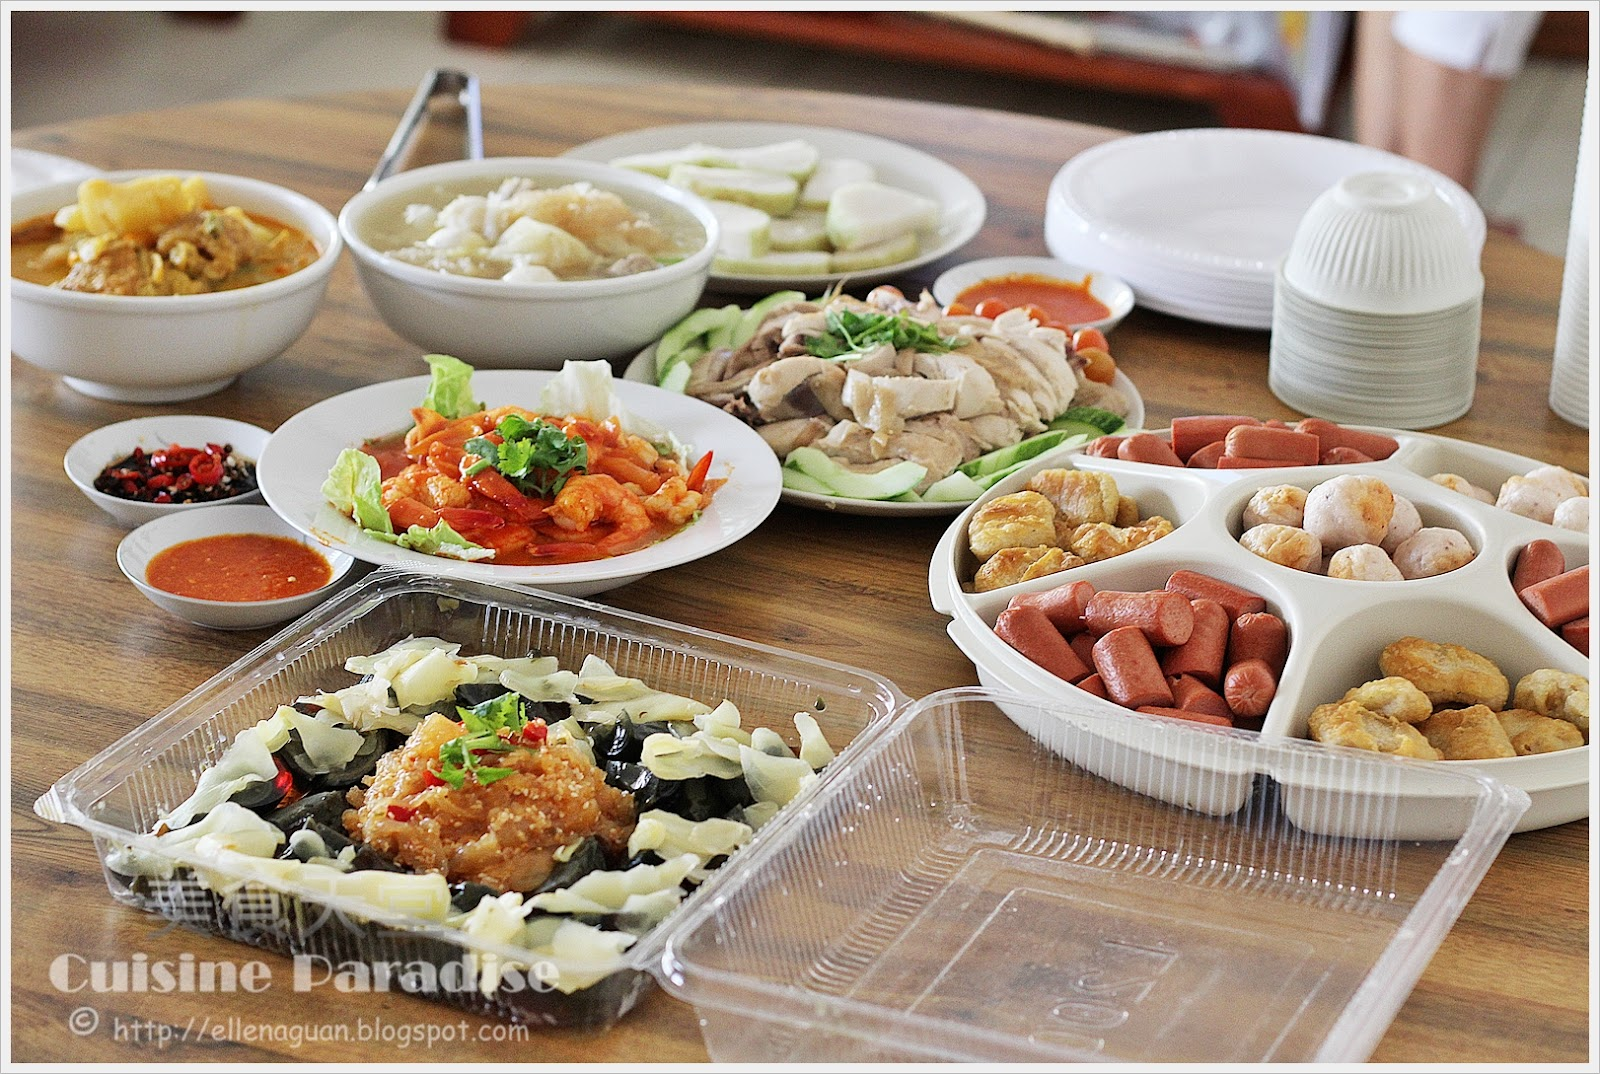 Cuisine paradise singapore food blog recipes reviews and travel cny dinner at 3rd uncle house forumfinder Gallery